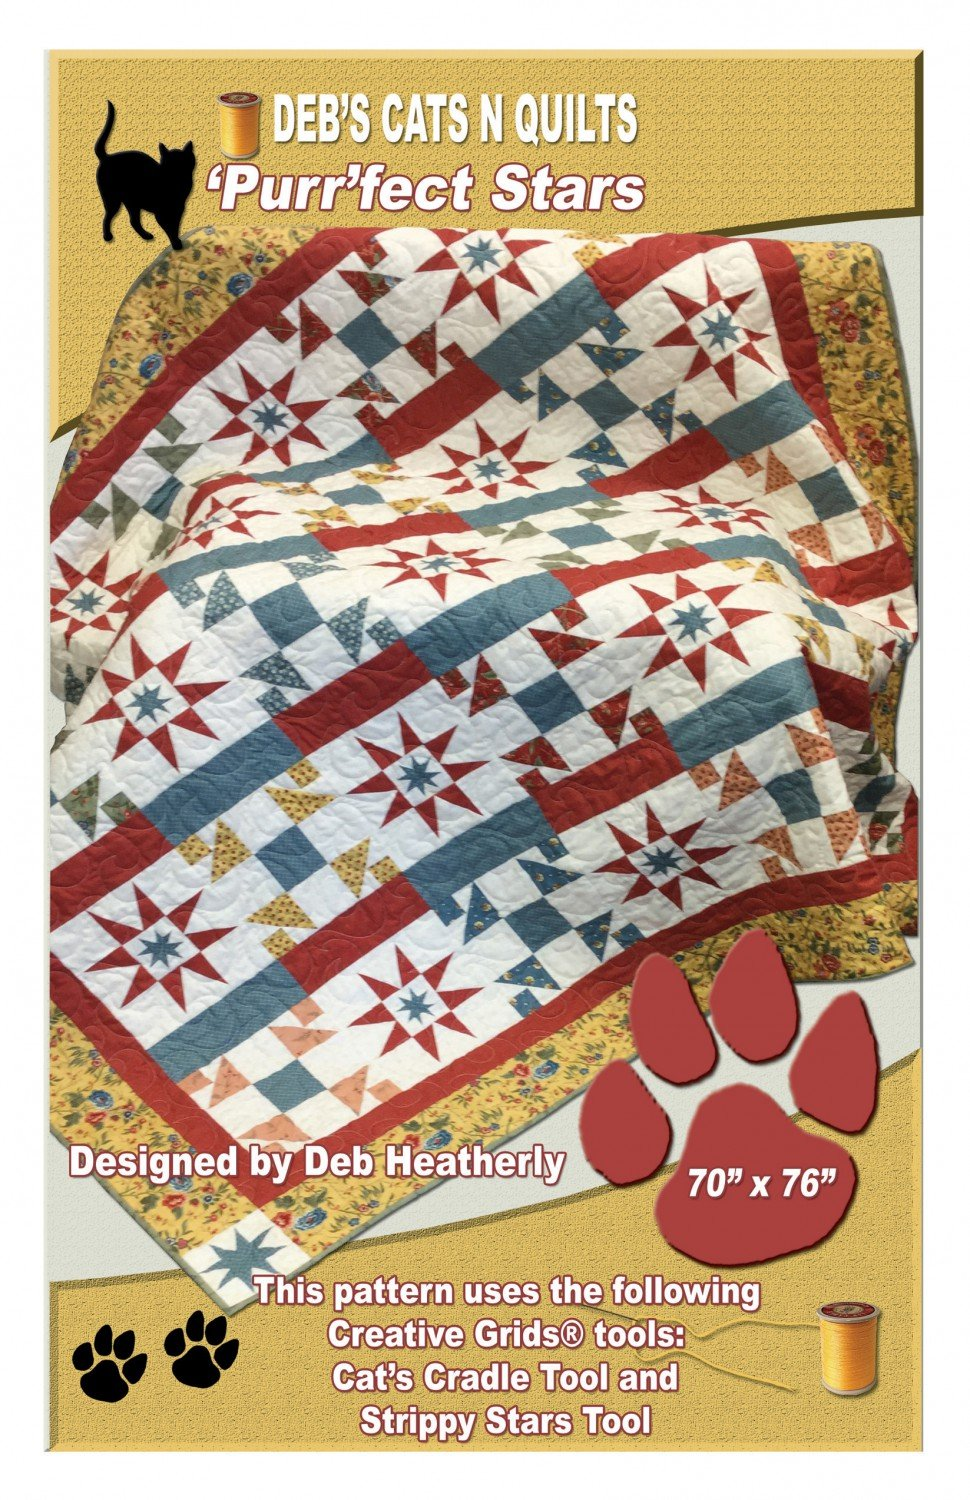 'Purr'fect Stars from Deb's Cats N Quilts